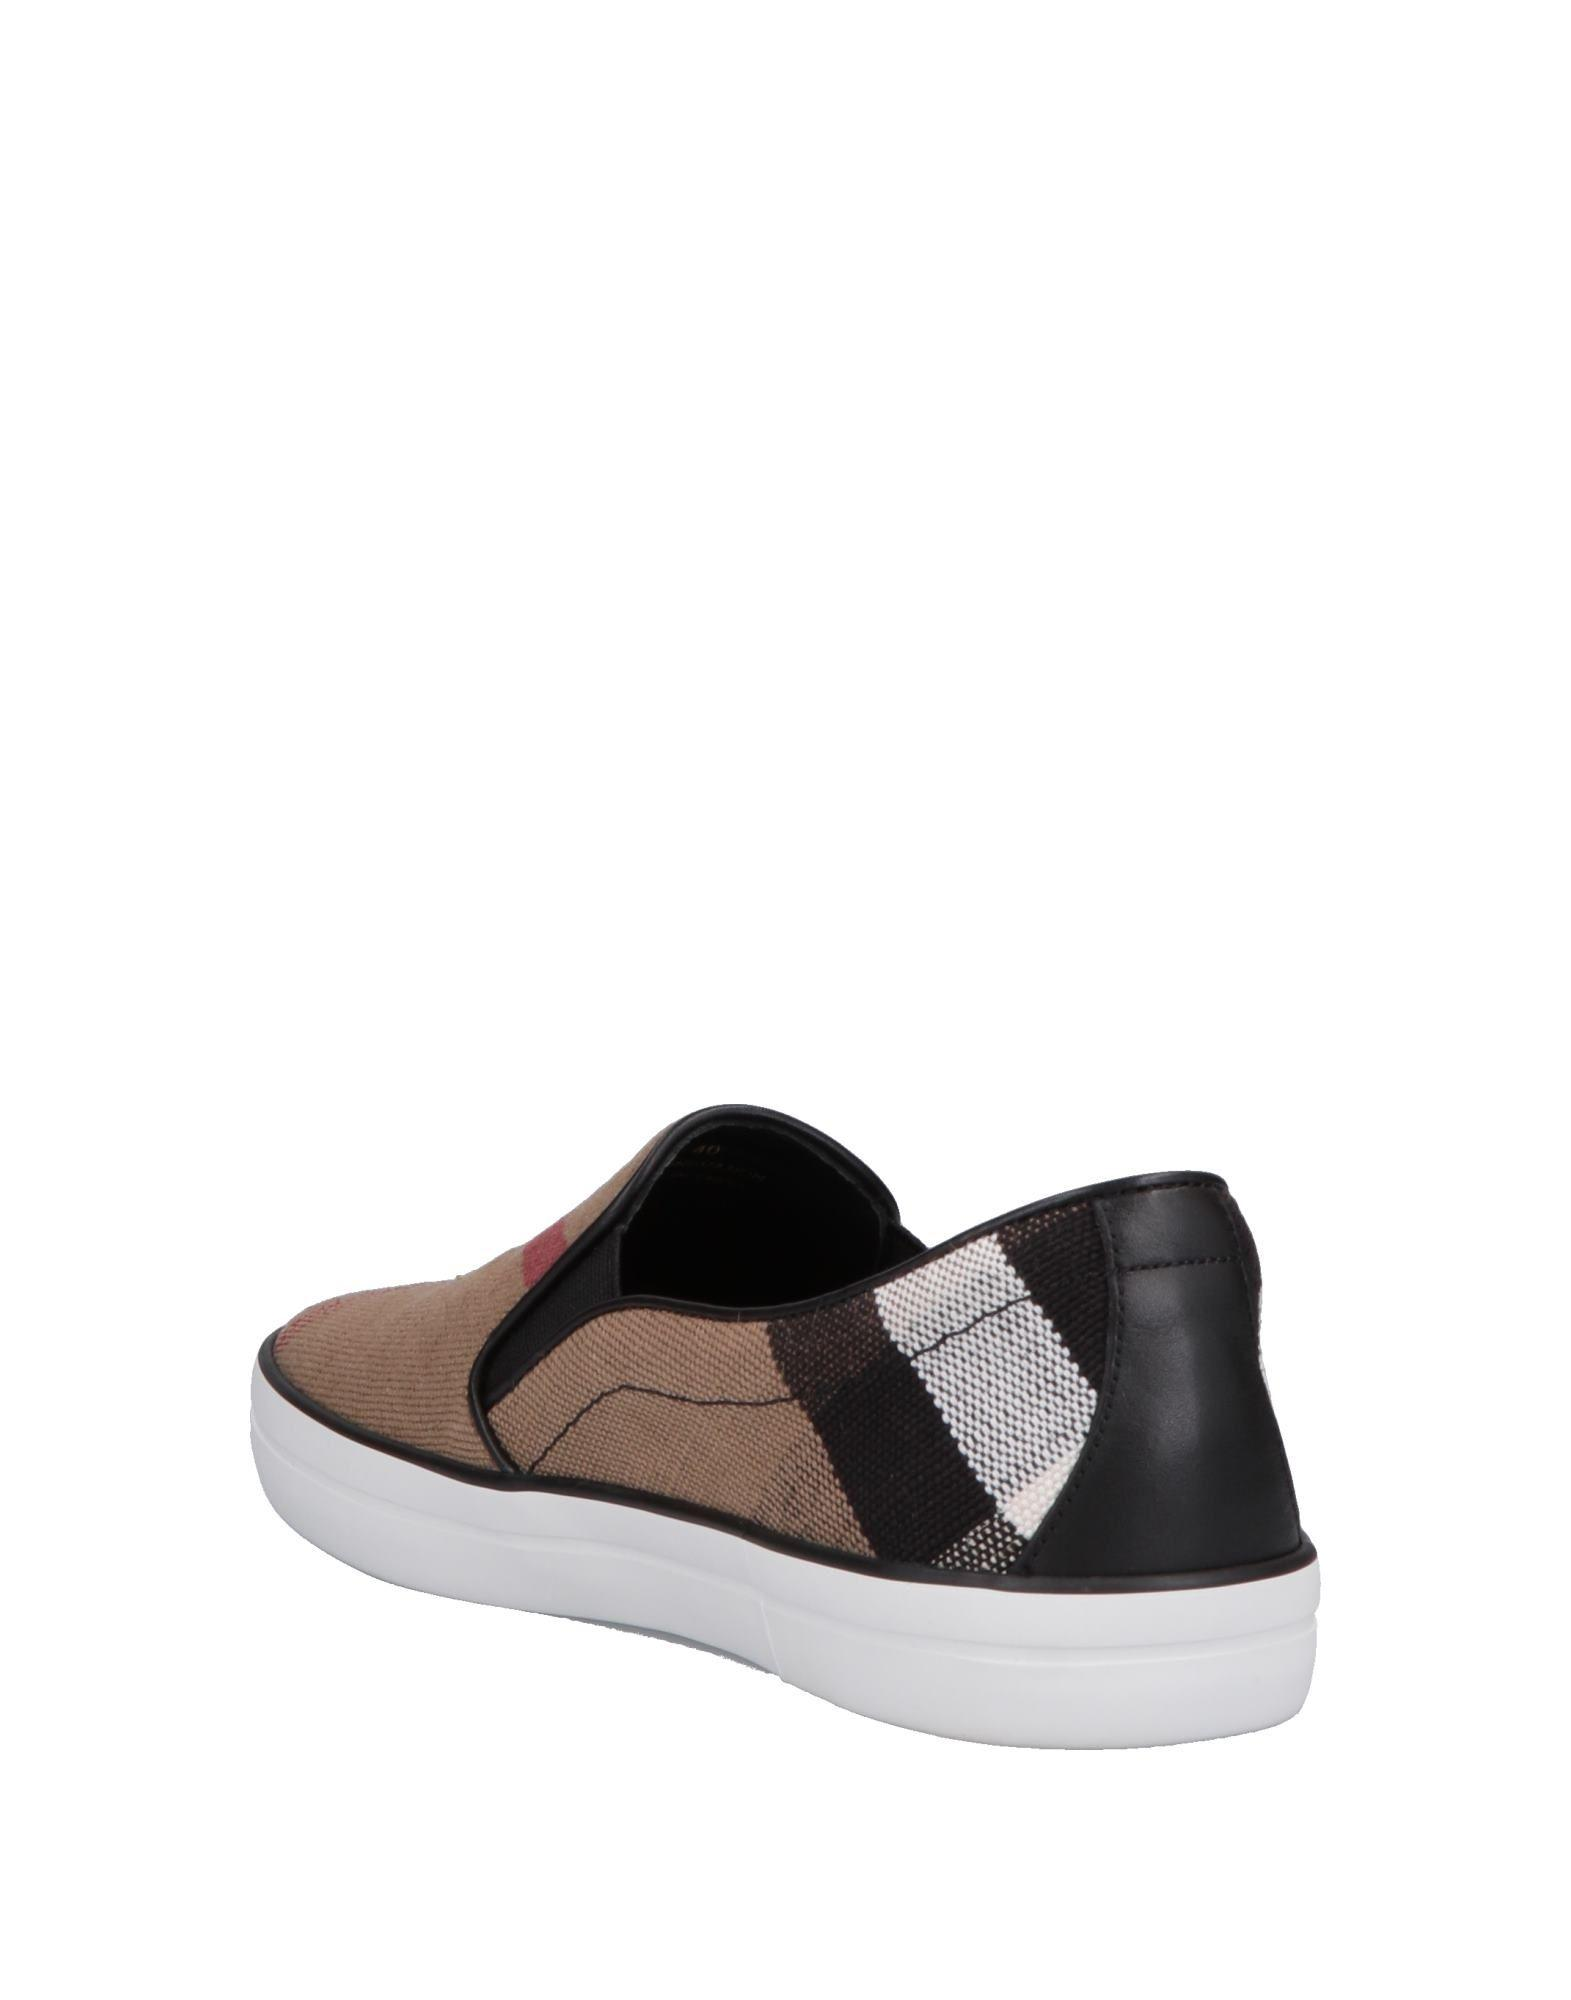 e53d8a2c26d9 Lyst - Burberry Low-tops & Sneakers